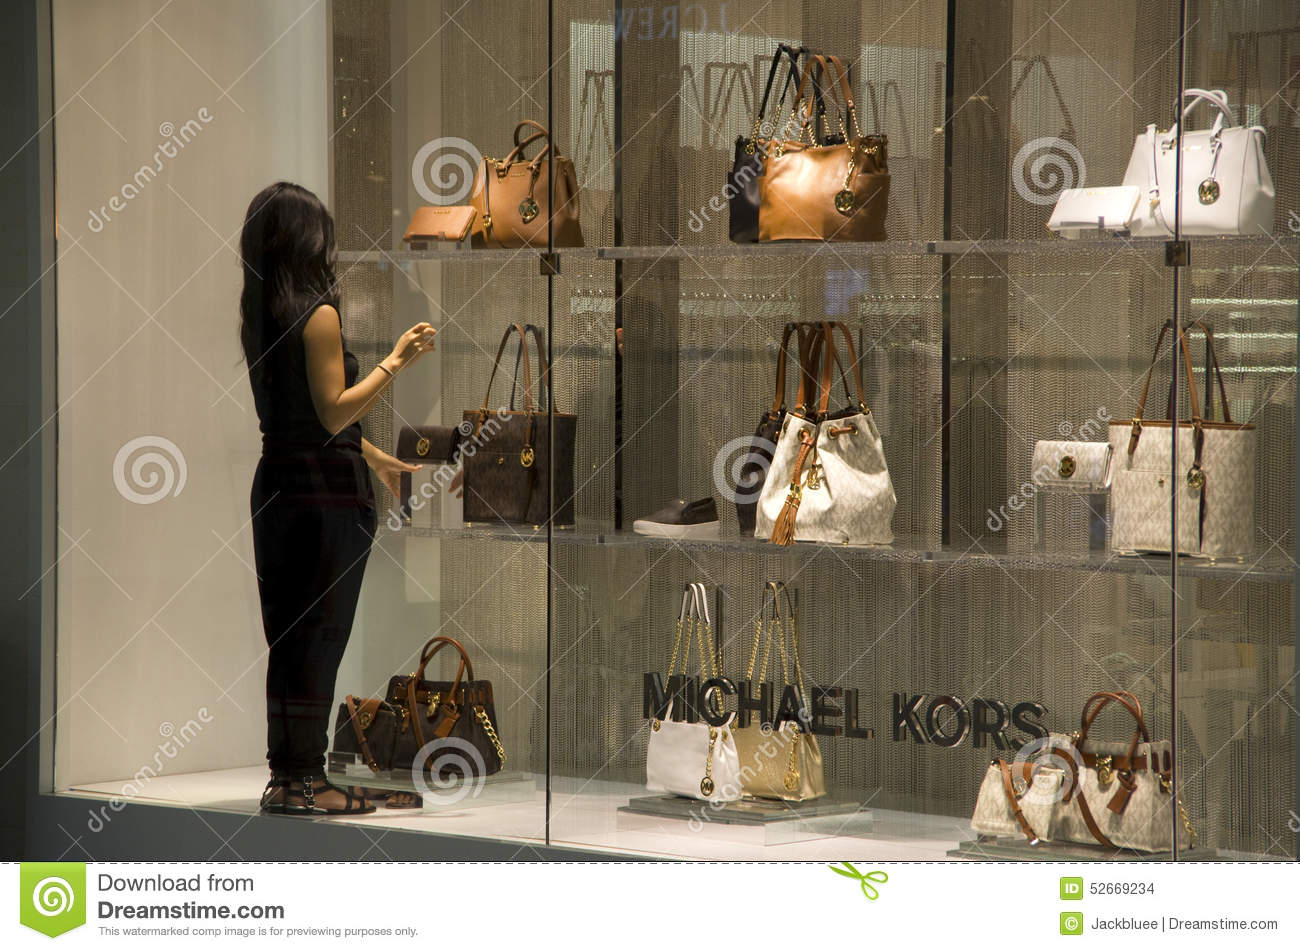 e4e19b45b87c A shop worker was decorating the window of Michael Kors shop in Alderwood  Mall Lynnwood, near Seattle.